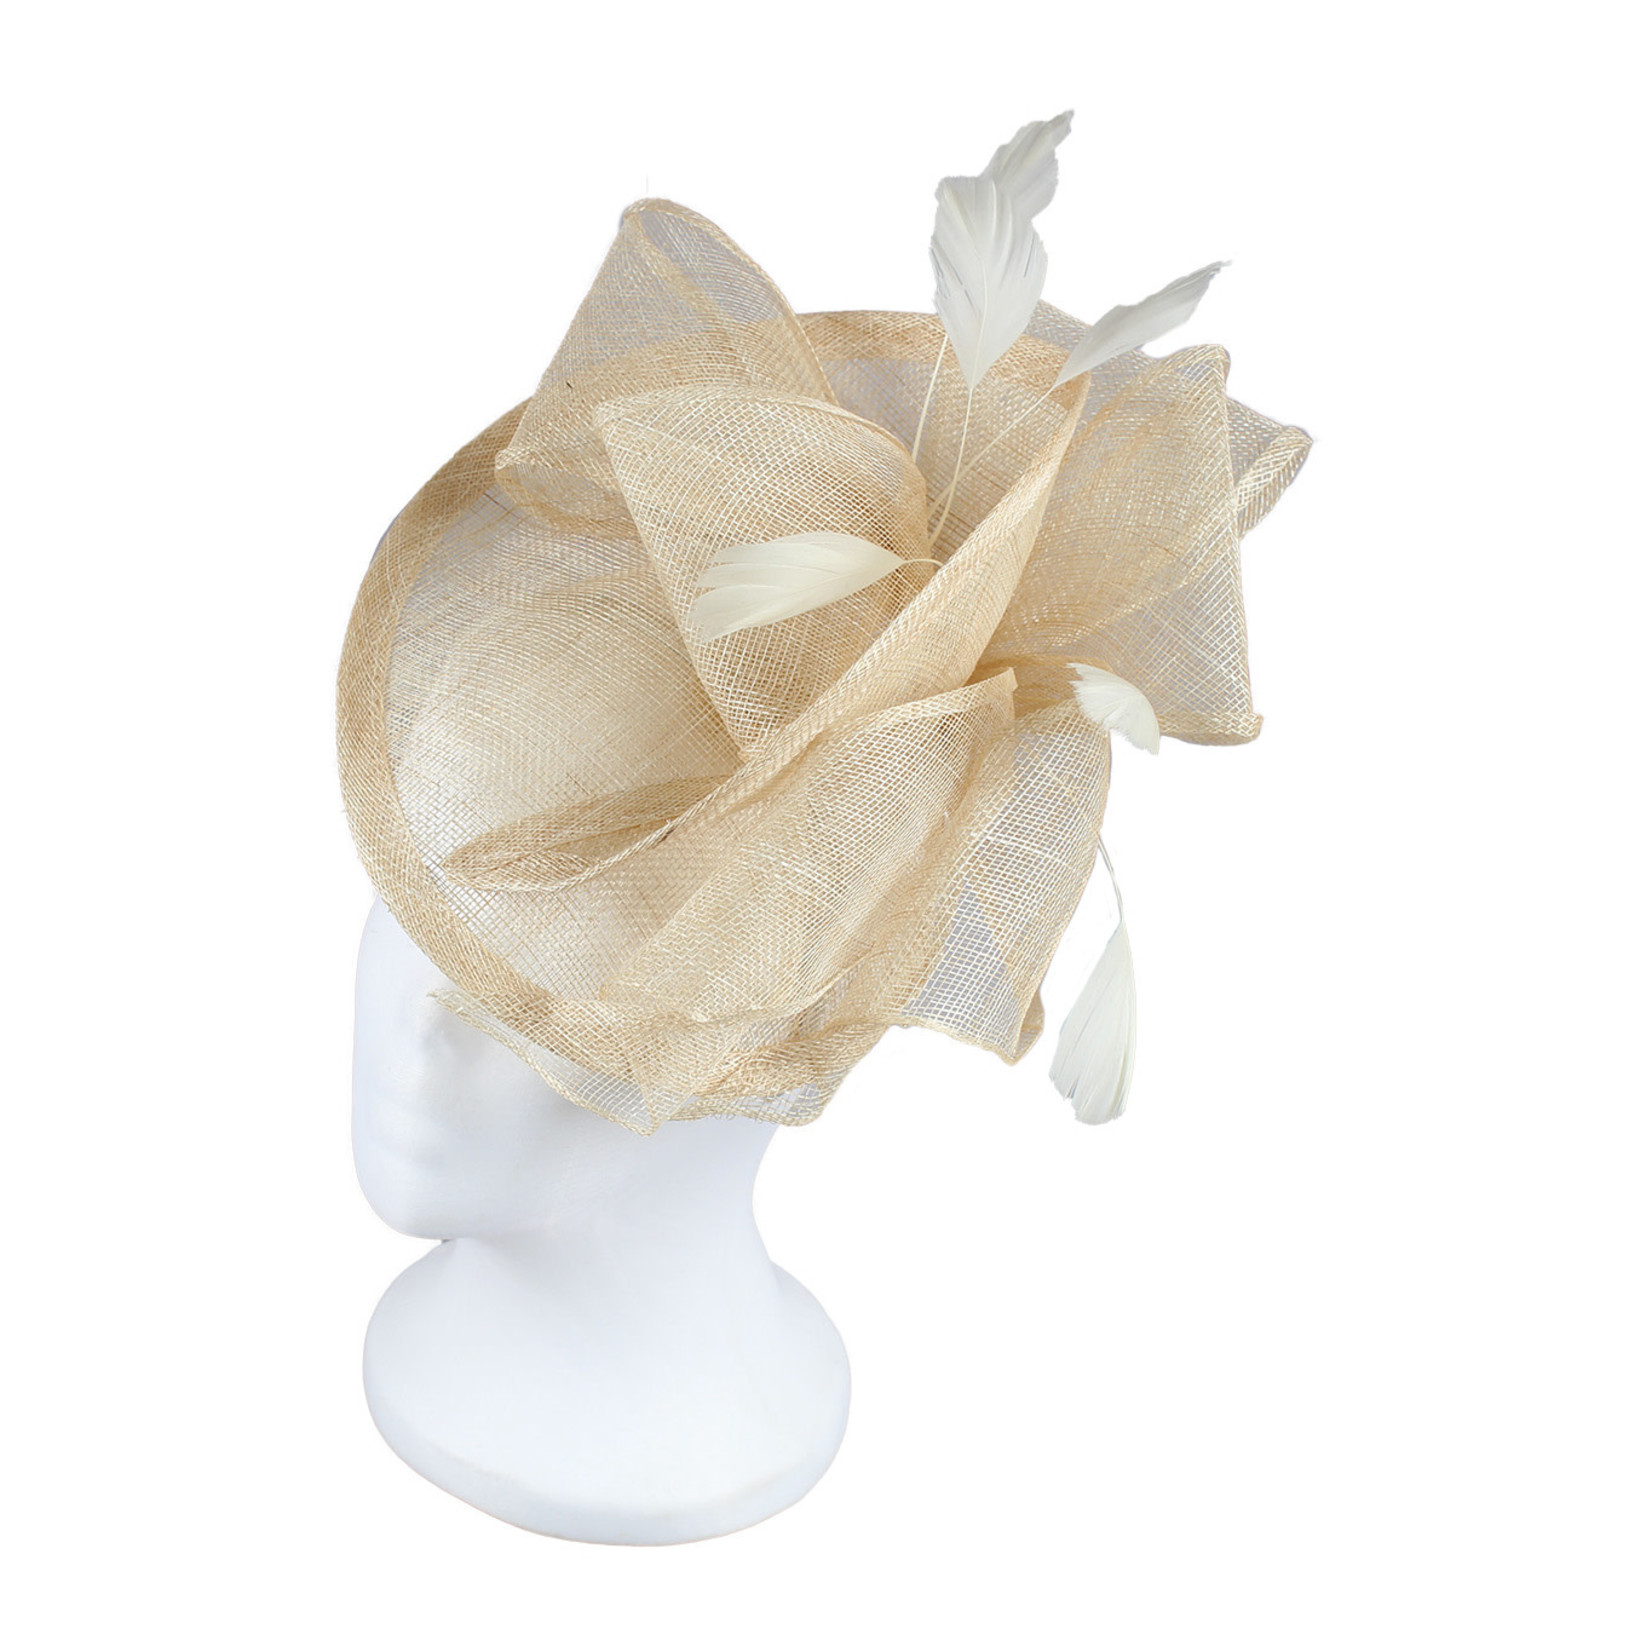 Jeanne Simmons Fascinator Headband w/ Natural Feathers and Bow on Partial Sinamay Disc